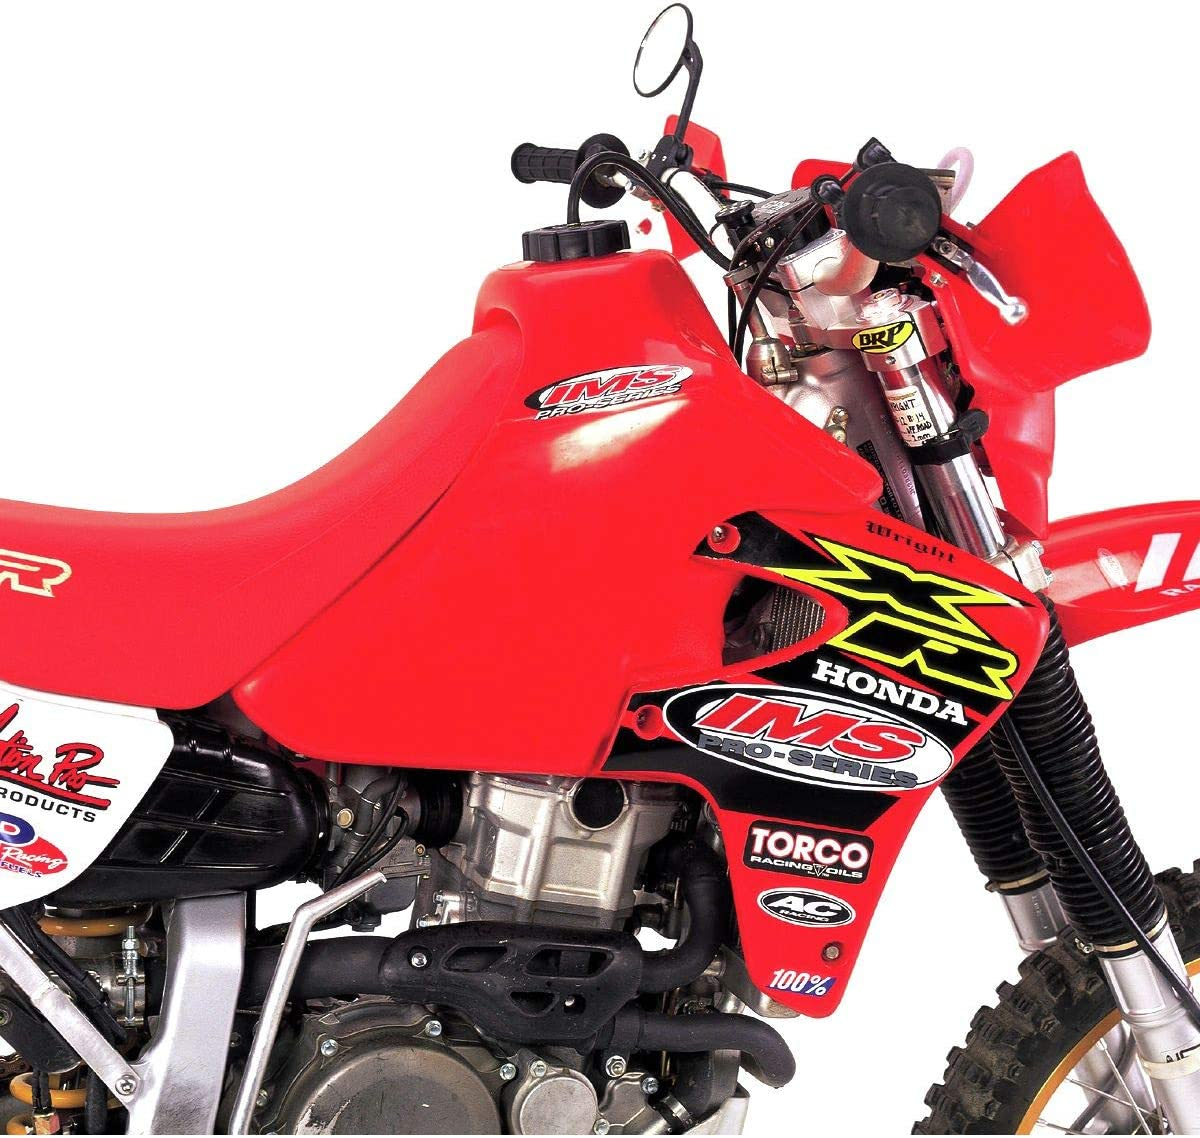 IMS 112228R2 Bright Red Large Fuel Tank 4.6 Gallon Capacity